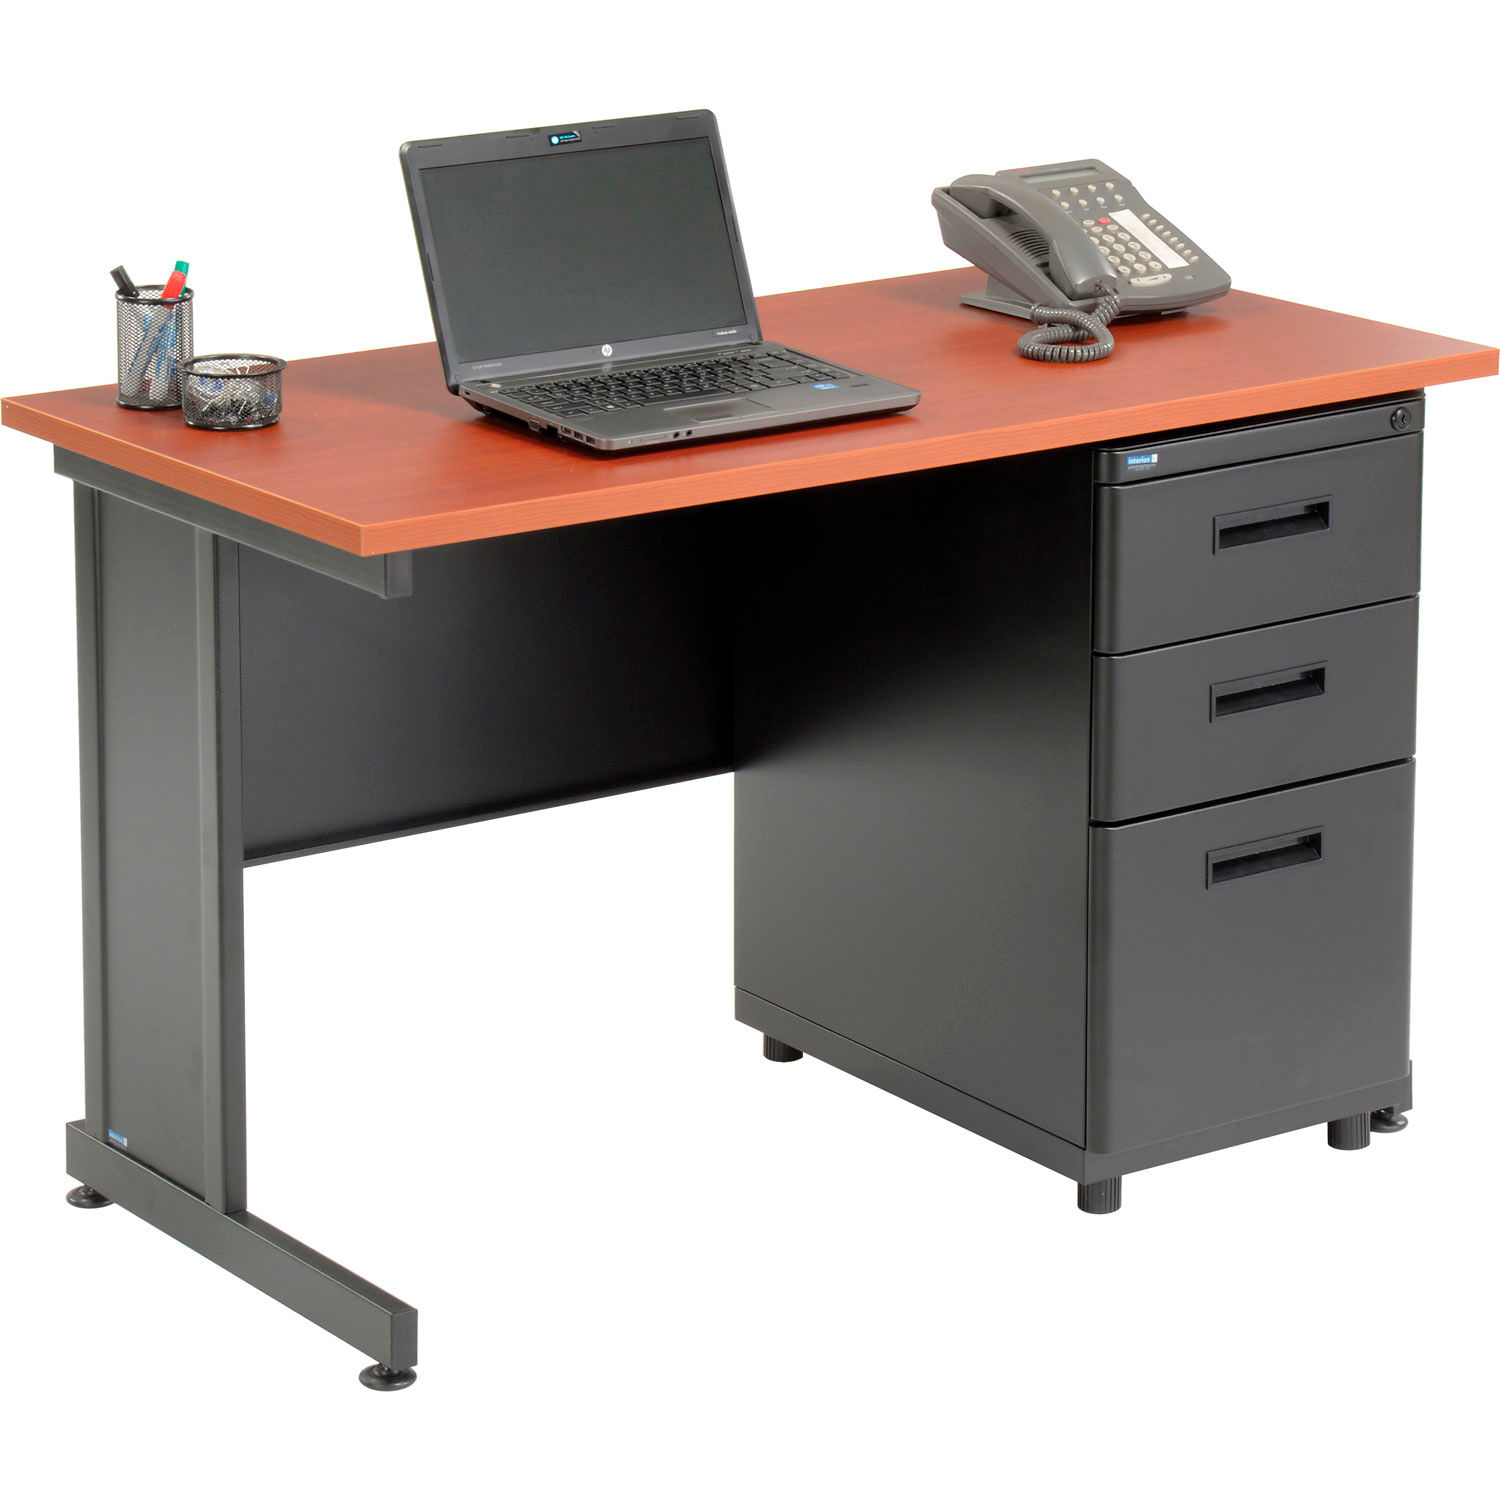 Excellent Desks Office Collections Office Desk With 3 Drawers Download Free Architecture Designs Scobabritishbridgeorg